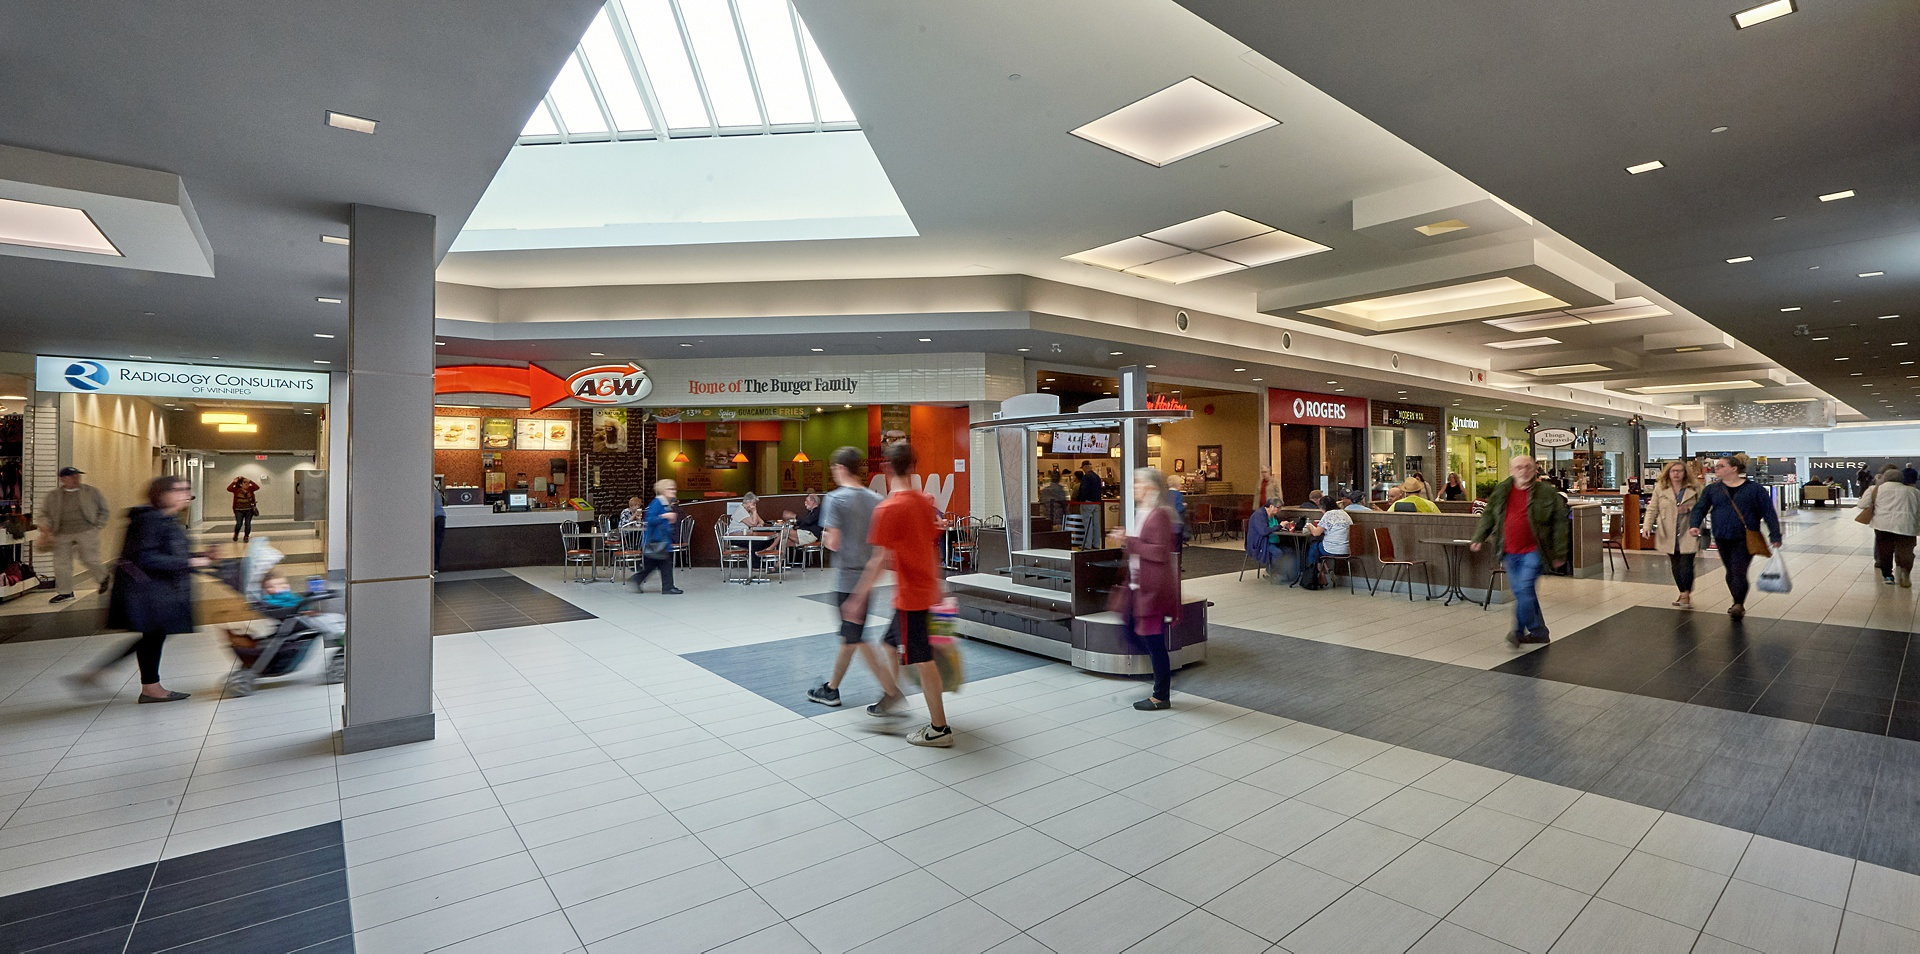 Grant Park Mall by_Ian_McCausland